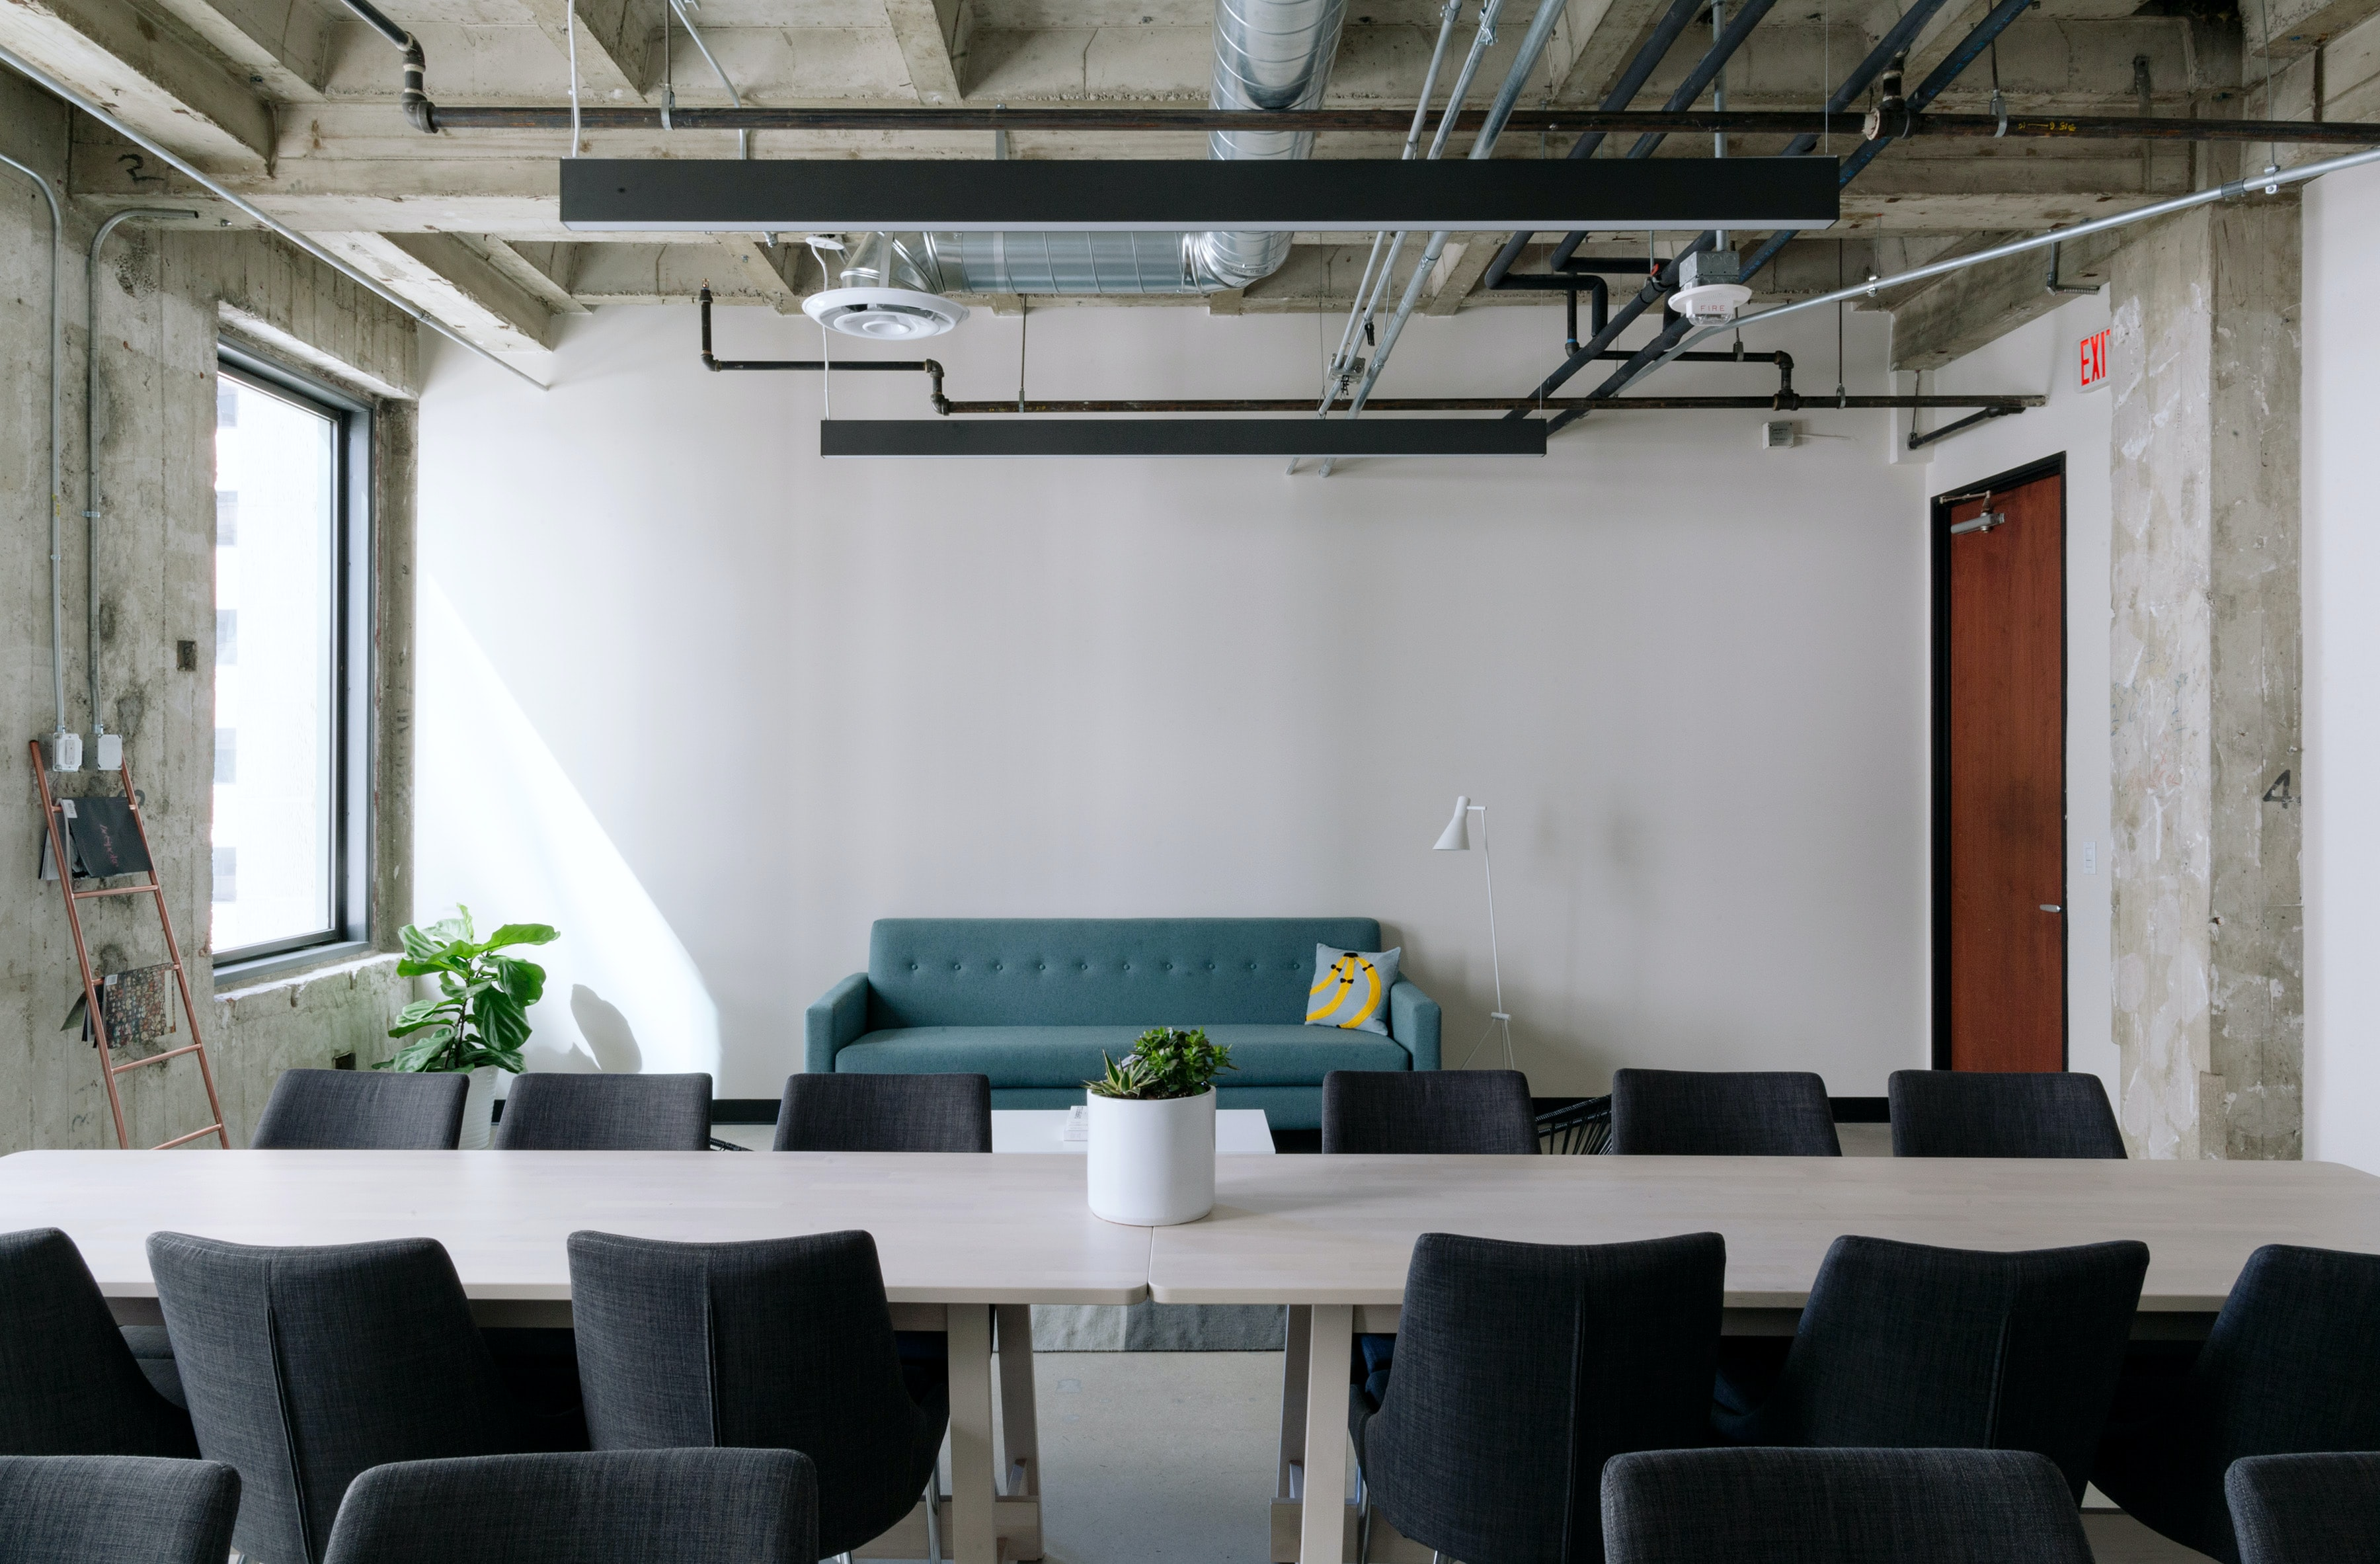 A meeting space in an office with two long tables and a sofa